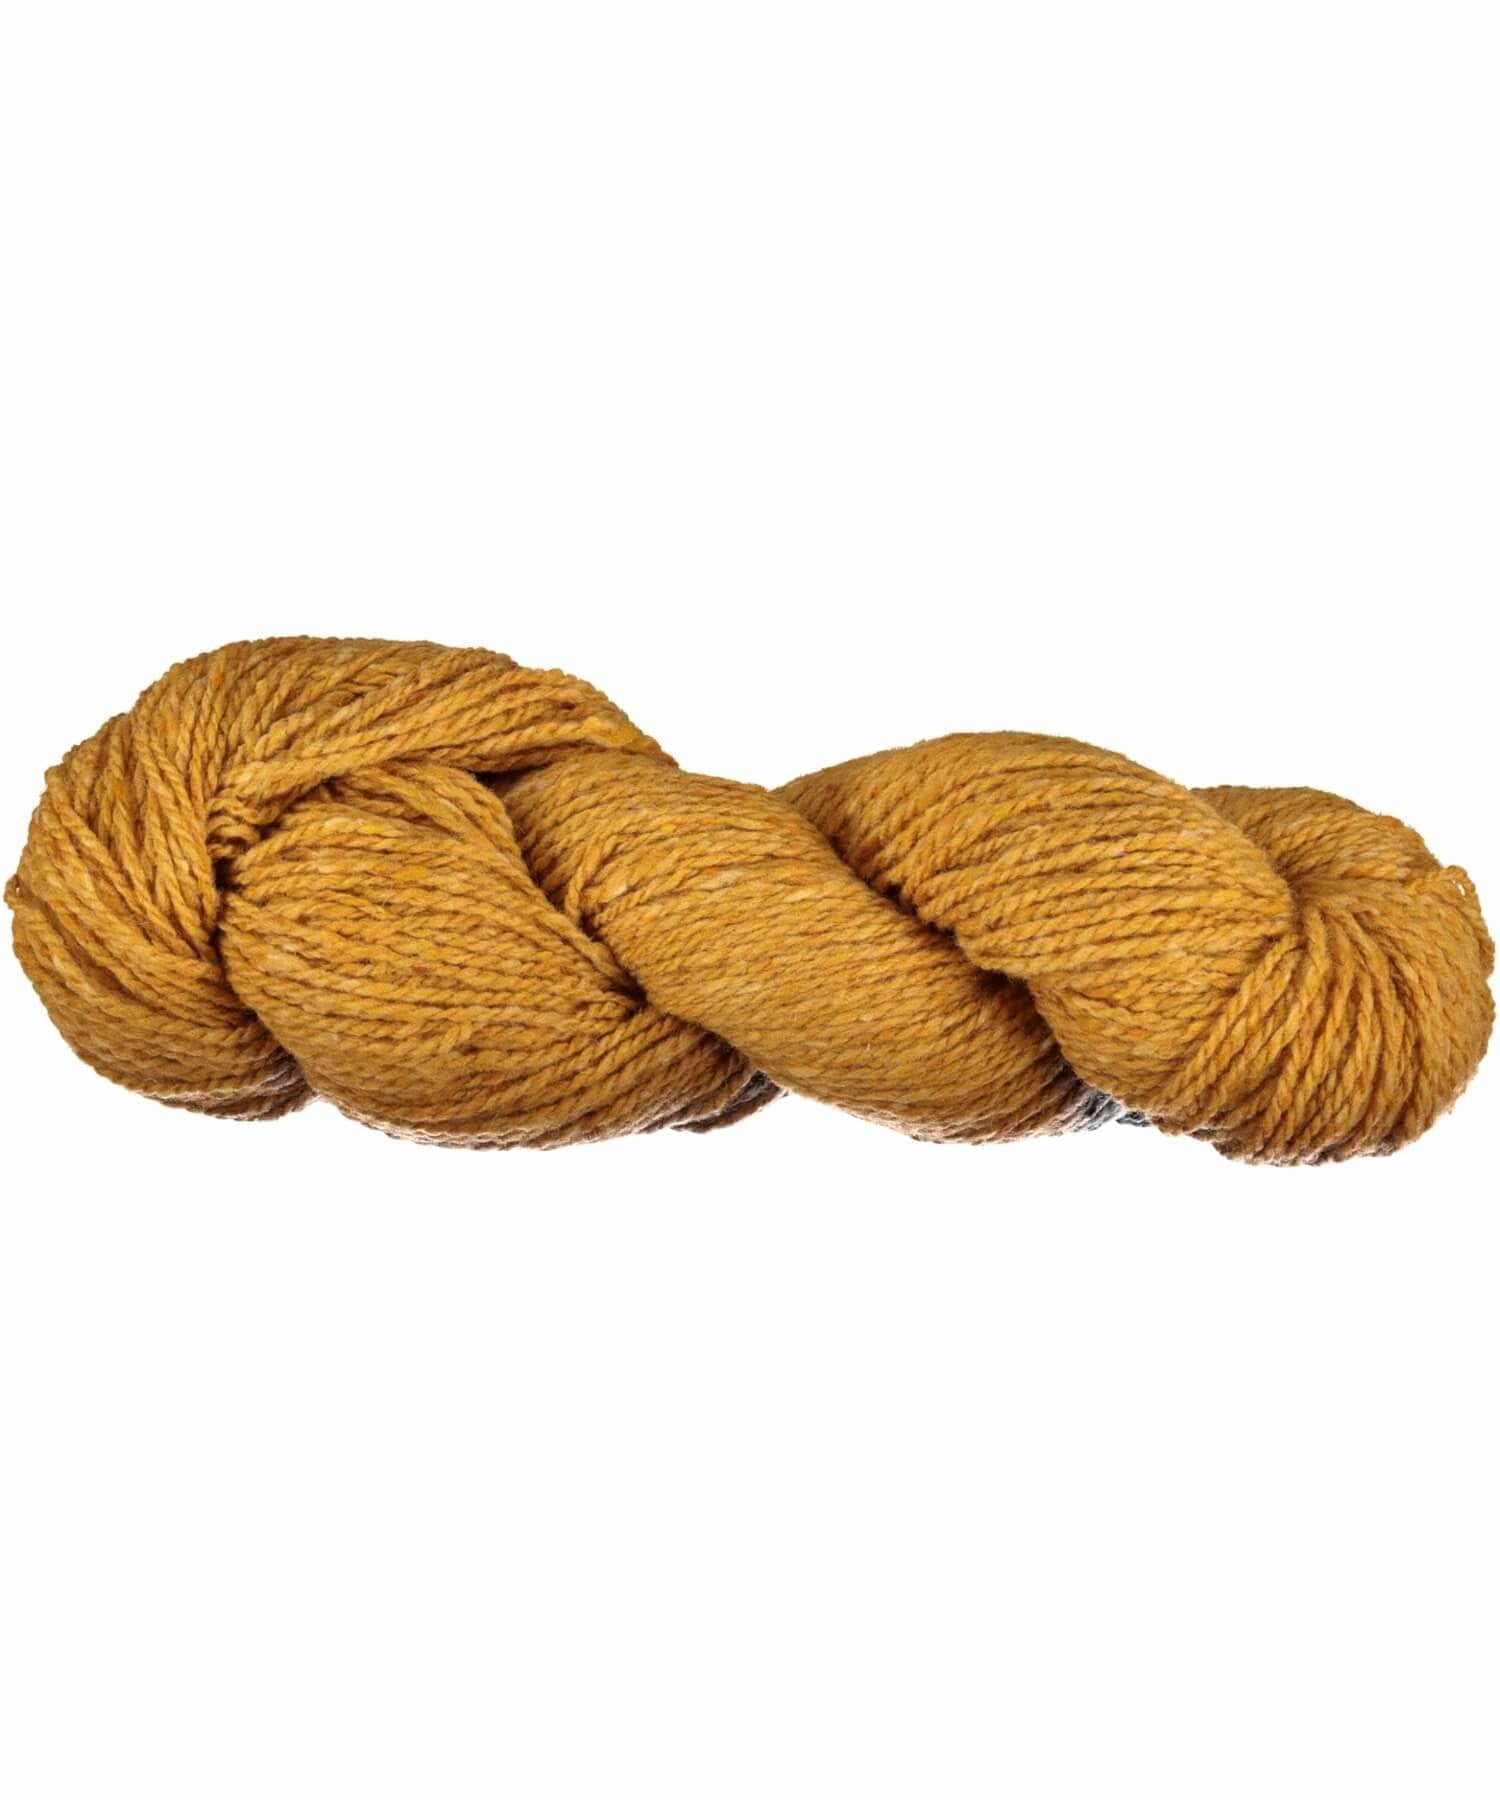 Soft Donegal Yarn - Ochre - [Studio Donegal] - Knitting - Irish Gifts